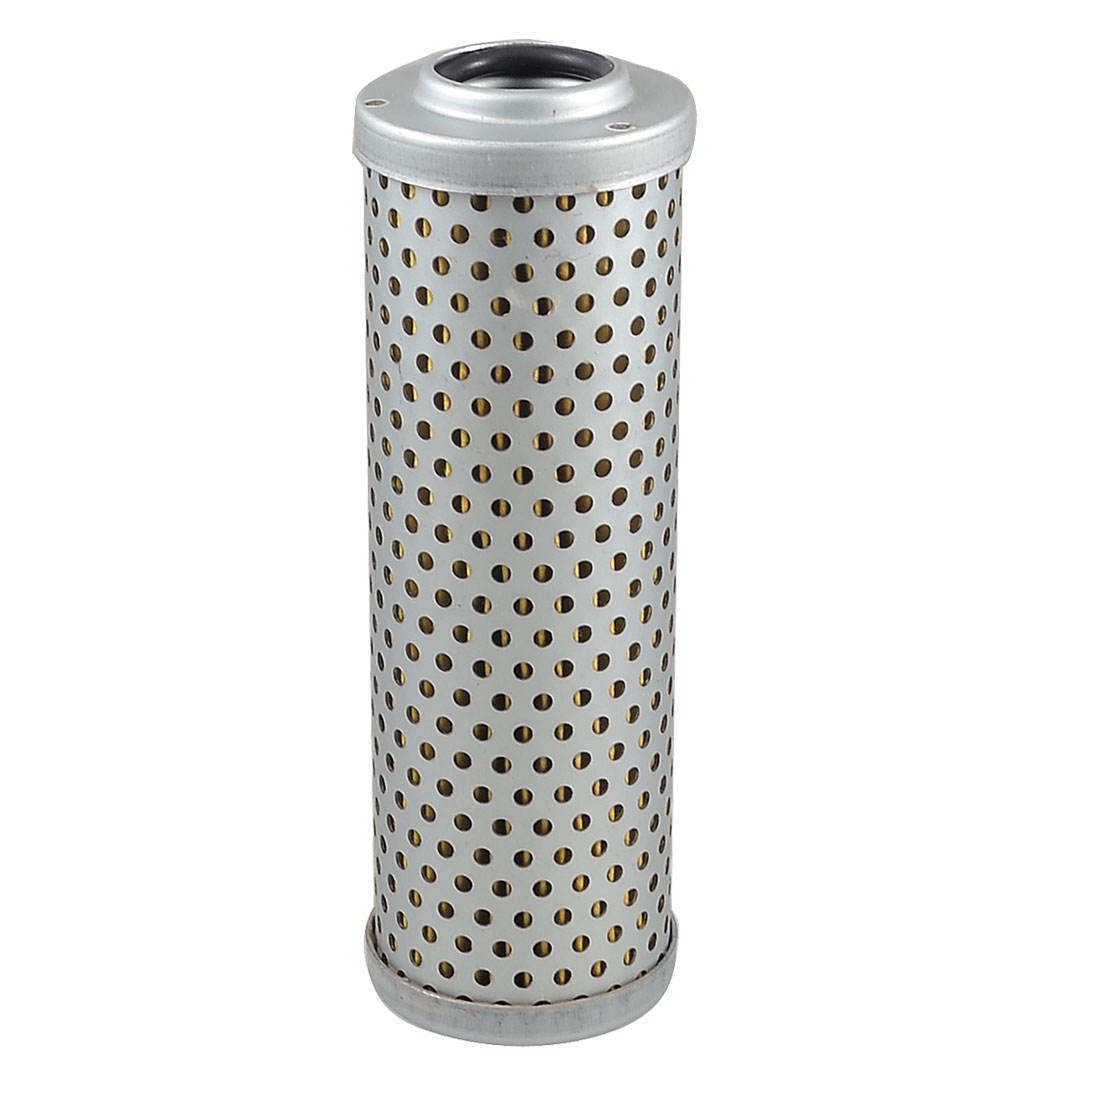 Excavator Replacement Hydraulic Oil Filter Strainer for Hitachi EX270